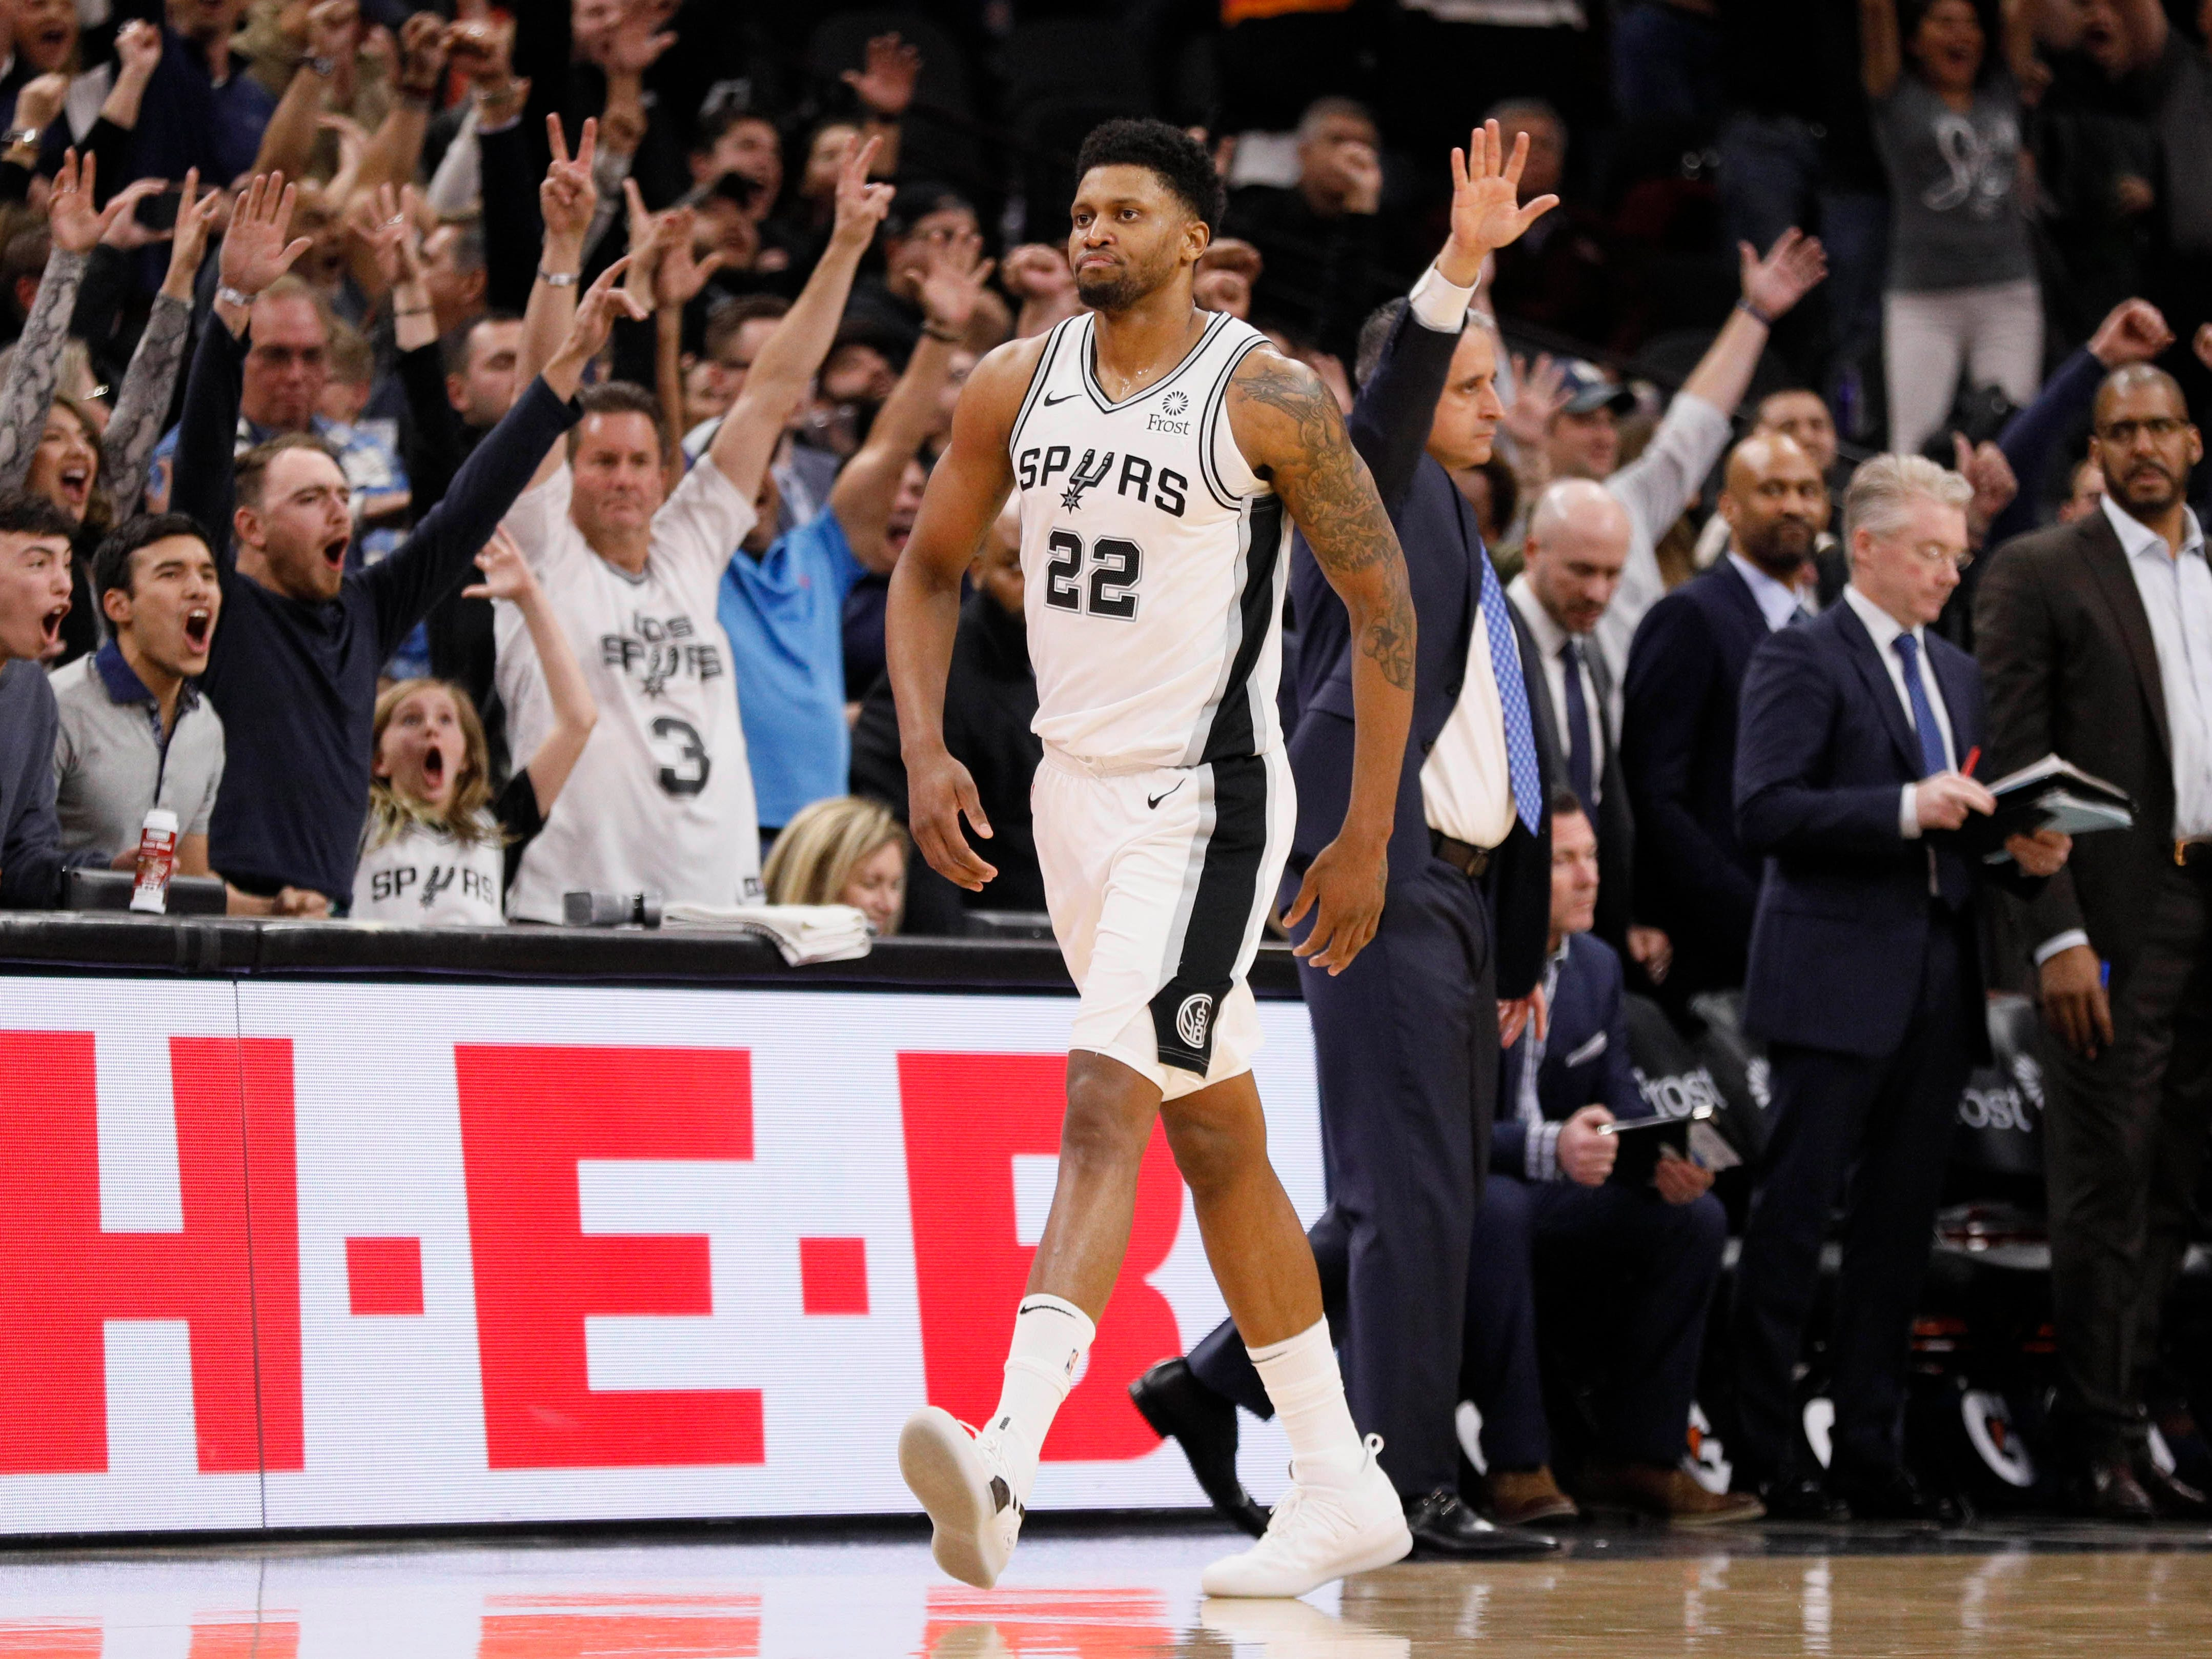 Jan. 29: Spurs forward Rudy Gay celebrates after hitting the game-winning shot at the buzzer to beat the Suns.